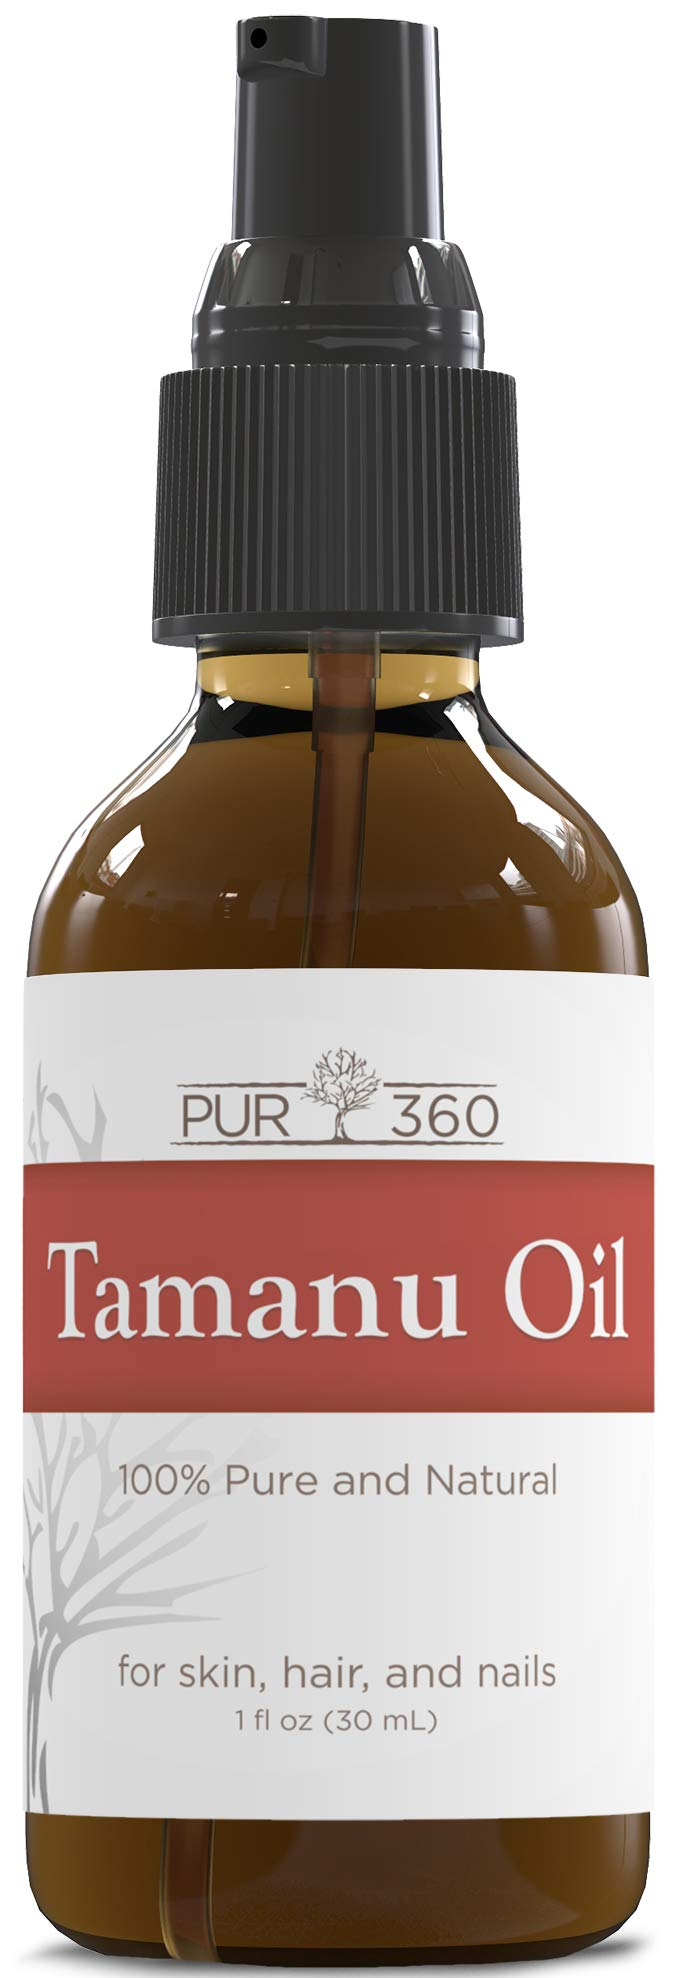 Pur360 Tamanu Oil - Pure Cold Pressed - Best Treatment for Psoriasis, Eczema, Acne Scar, Foot Fungus, Rosacea - Relief for Dry, Scaly Skin, Scalp and More by PUR360